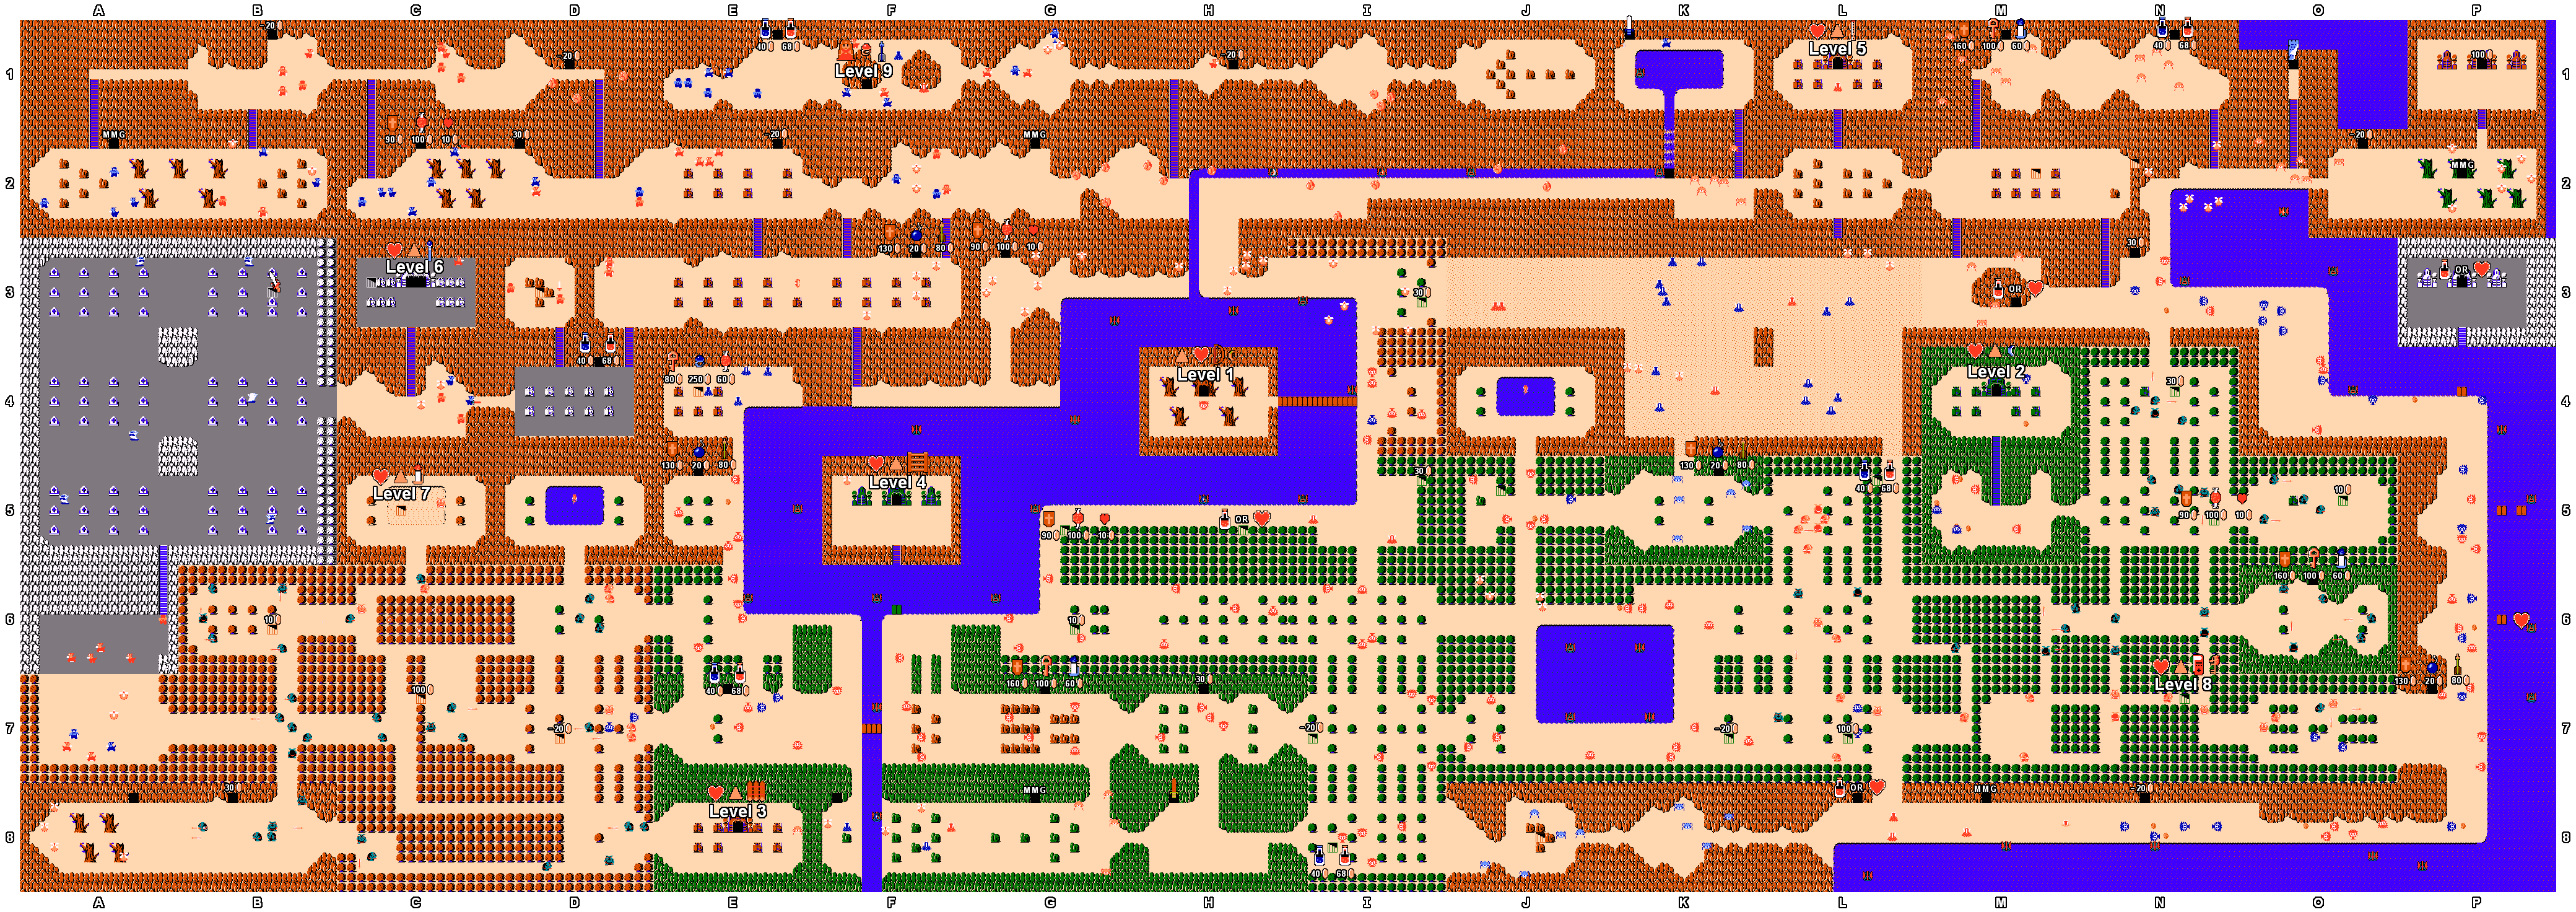 maps  st quest. mike's rpg center  the legend of zelda